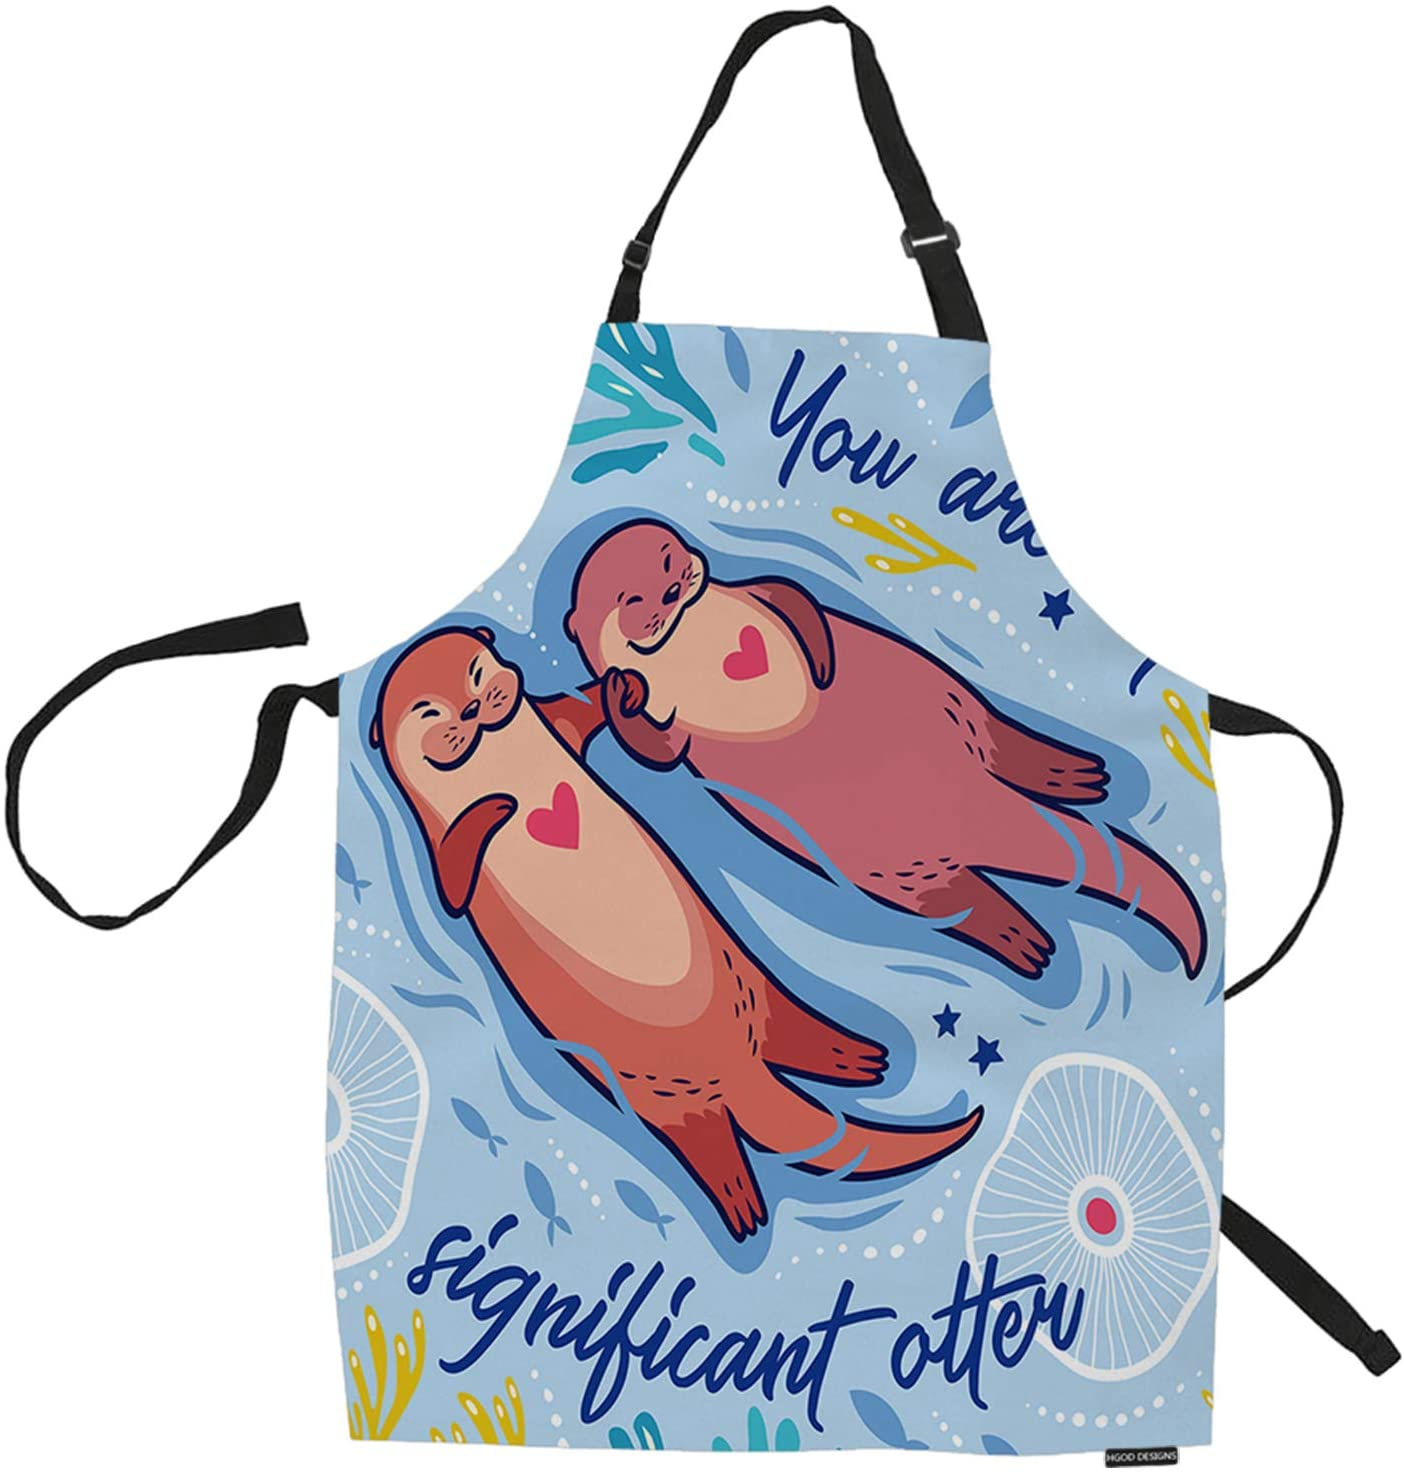 HGOD DESIGNS Otters Kitchen Apron,Funny Cartoon Otters in The Sea with You are My Significant Otter Quotes Kitchen Aprons for Women Men for Cooking Gardening Adjustable Home Bibs,Adult Size